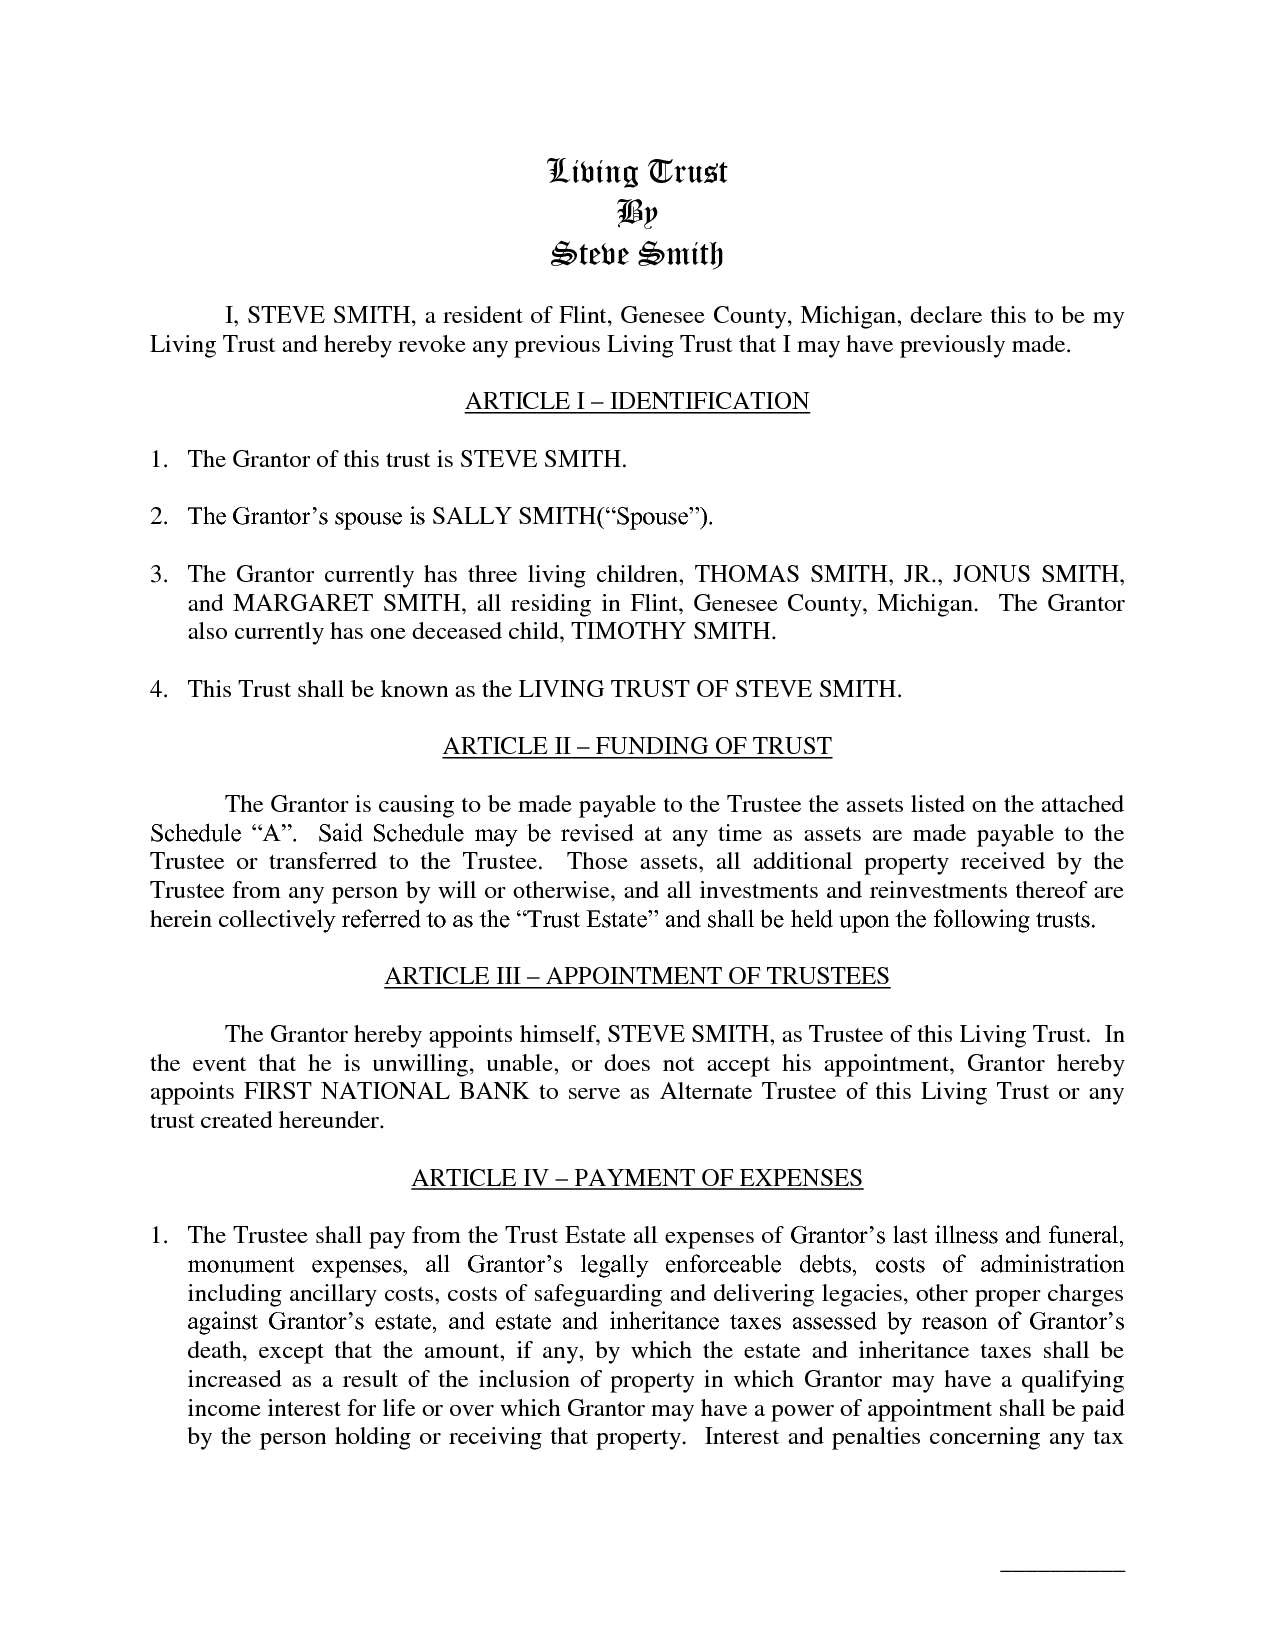 Irrevocable Trust Example